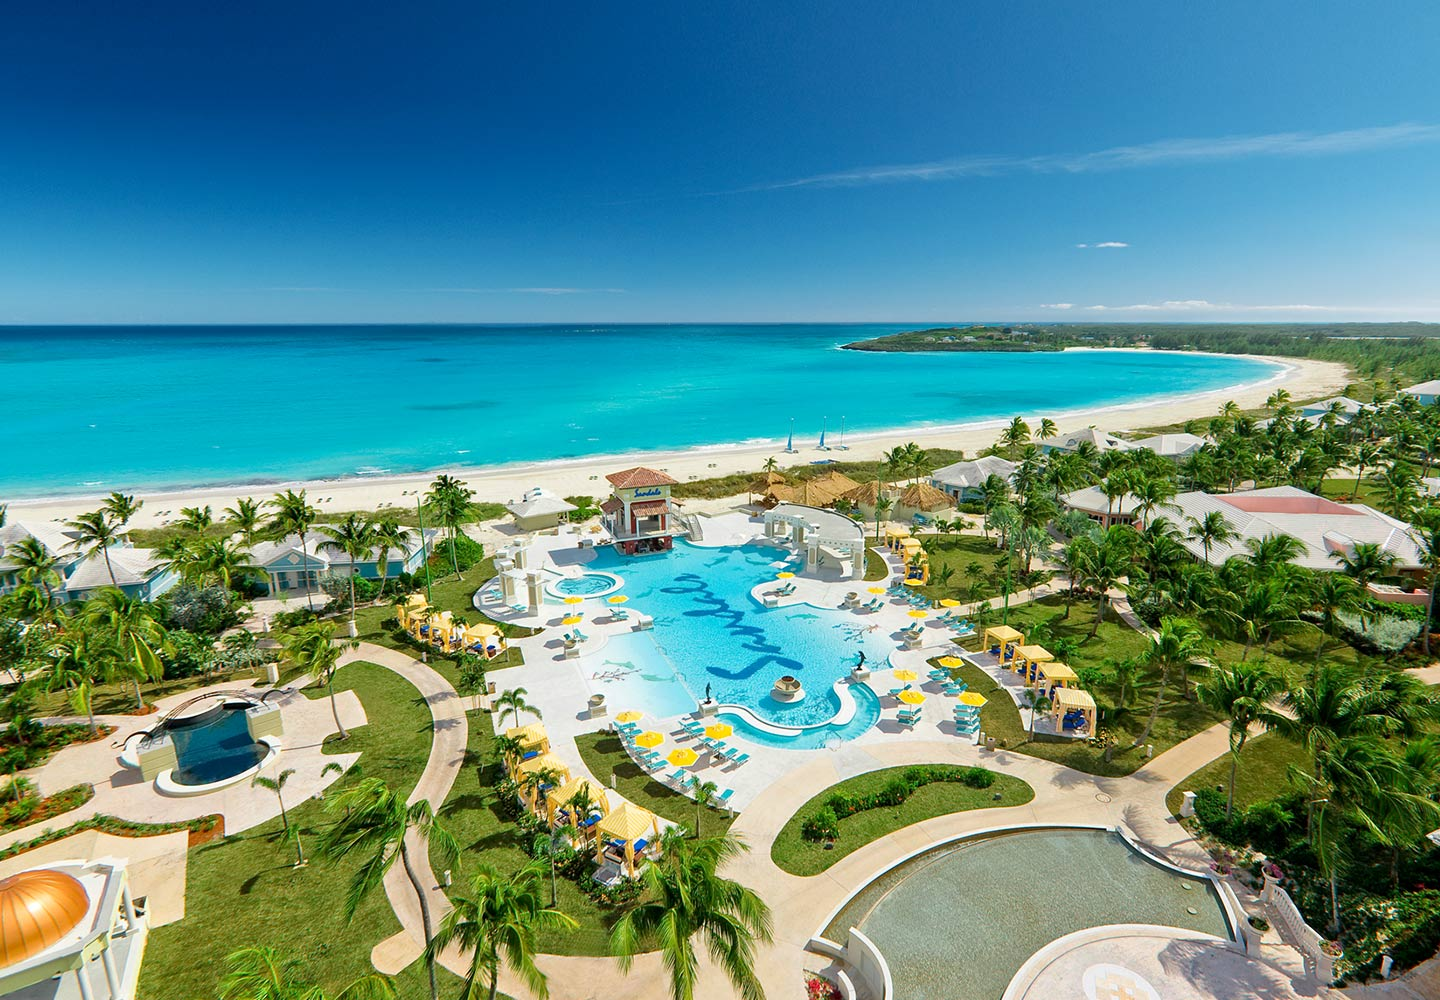 Sandals Resorts Discount Code CWY33 For The Free Castaway Cay Package